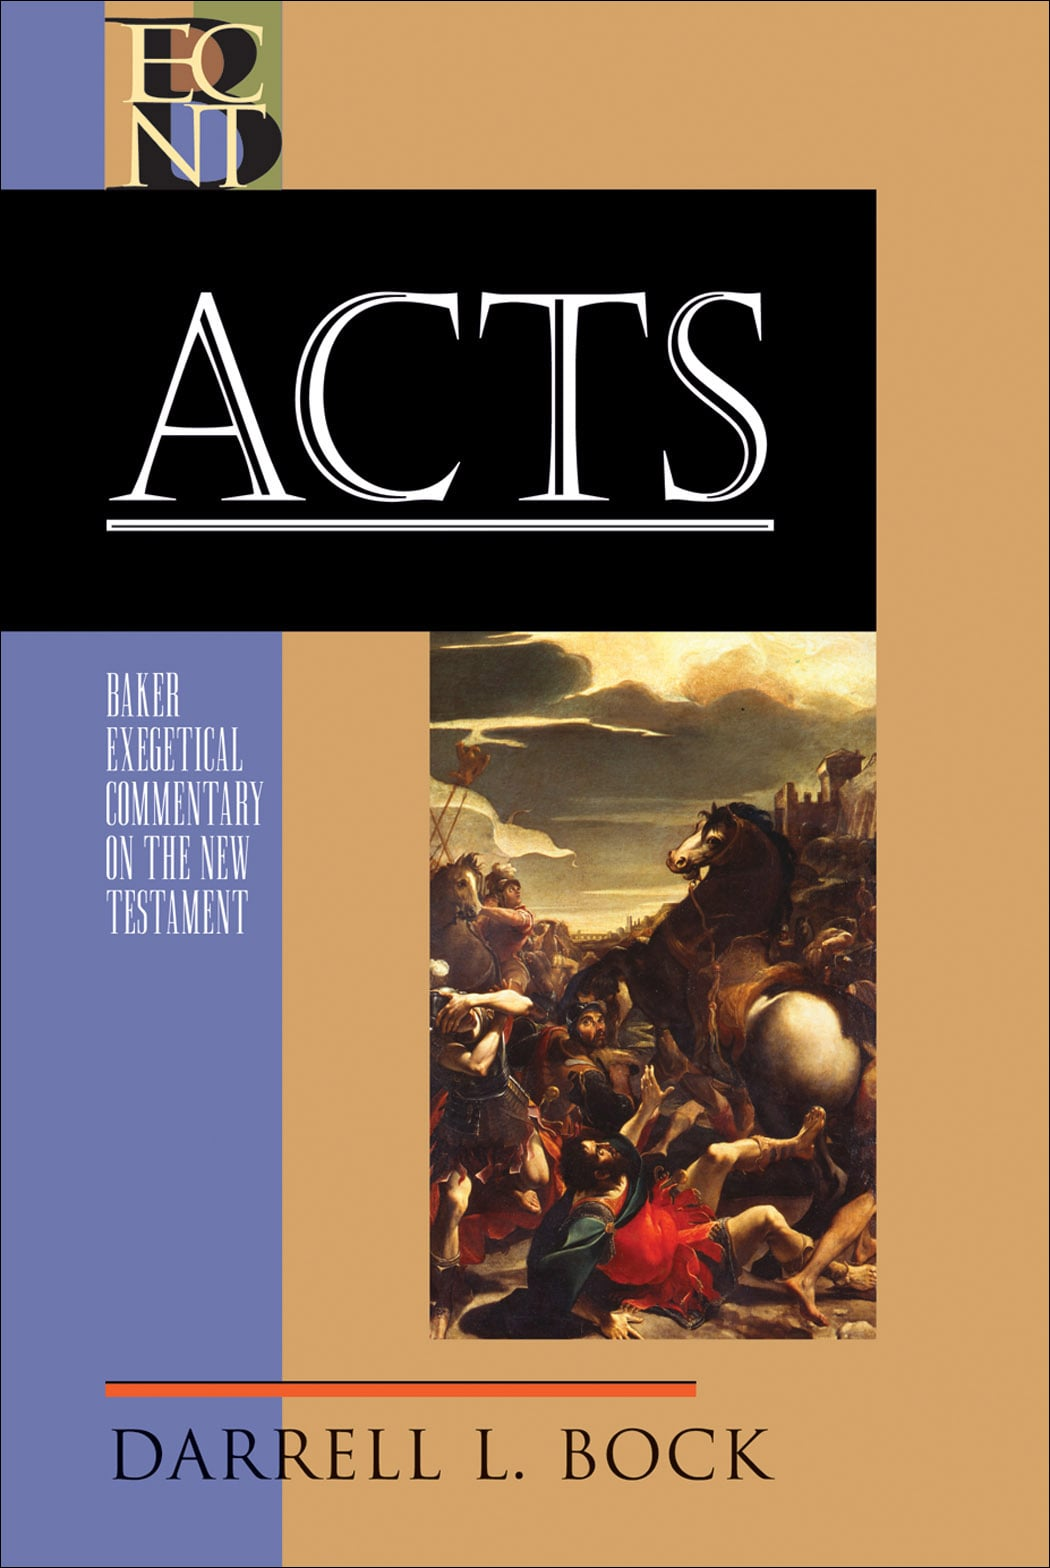 the message of the new testament ff bruce pdf